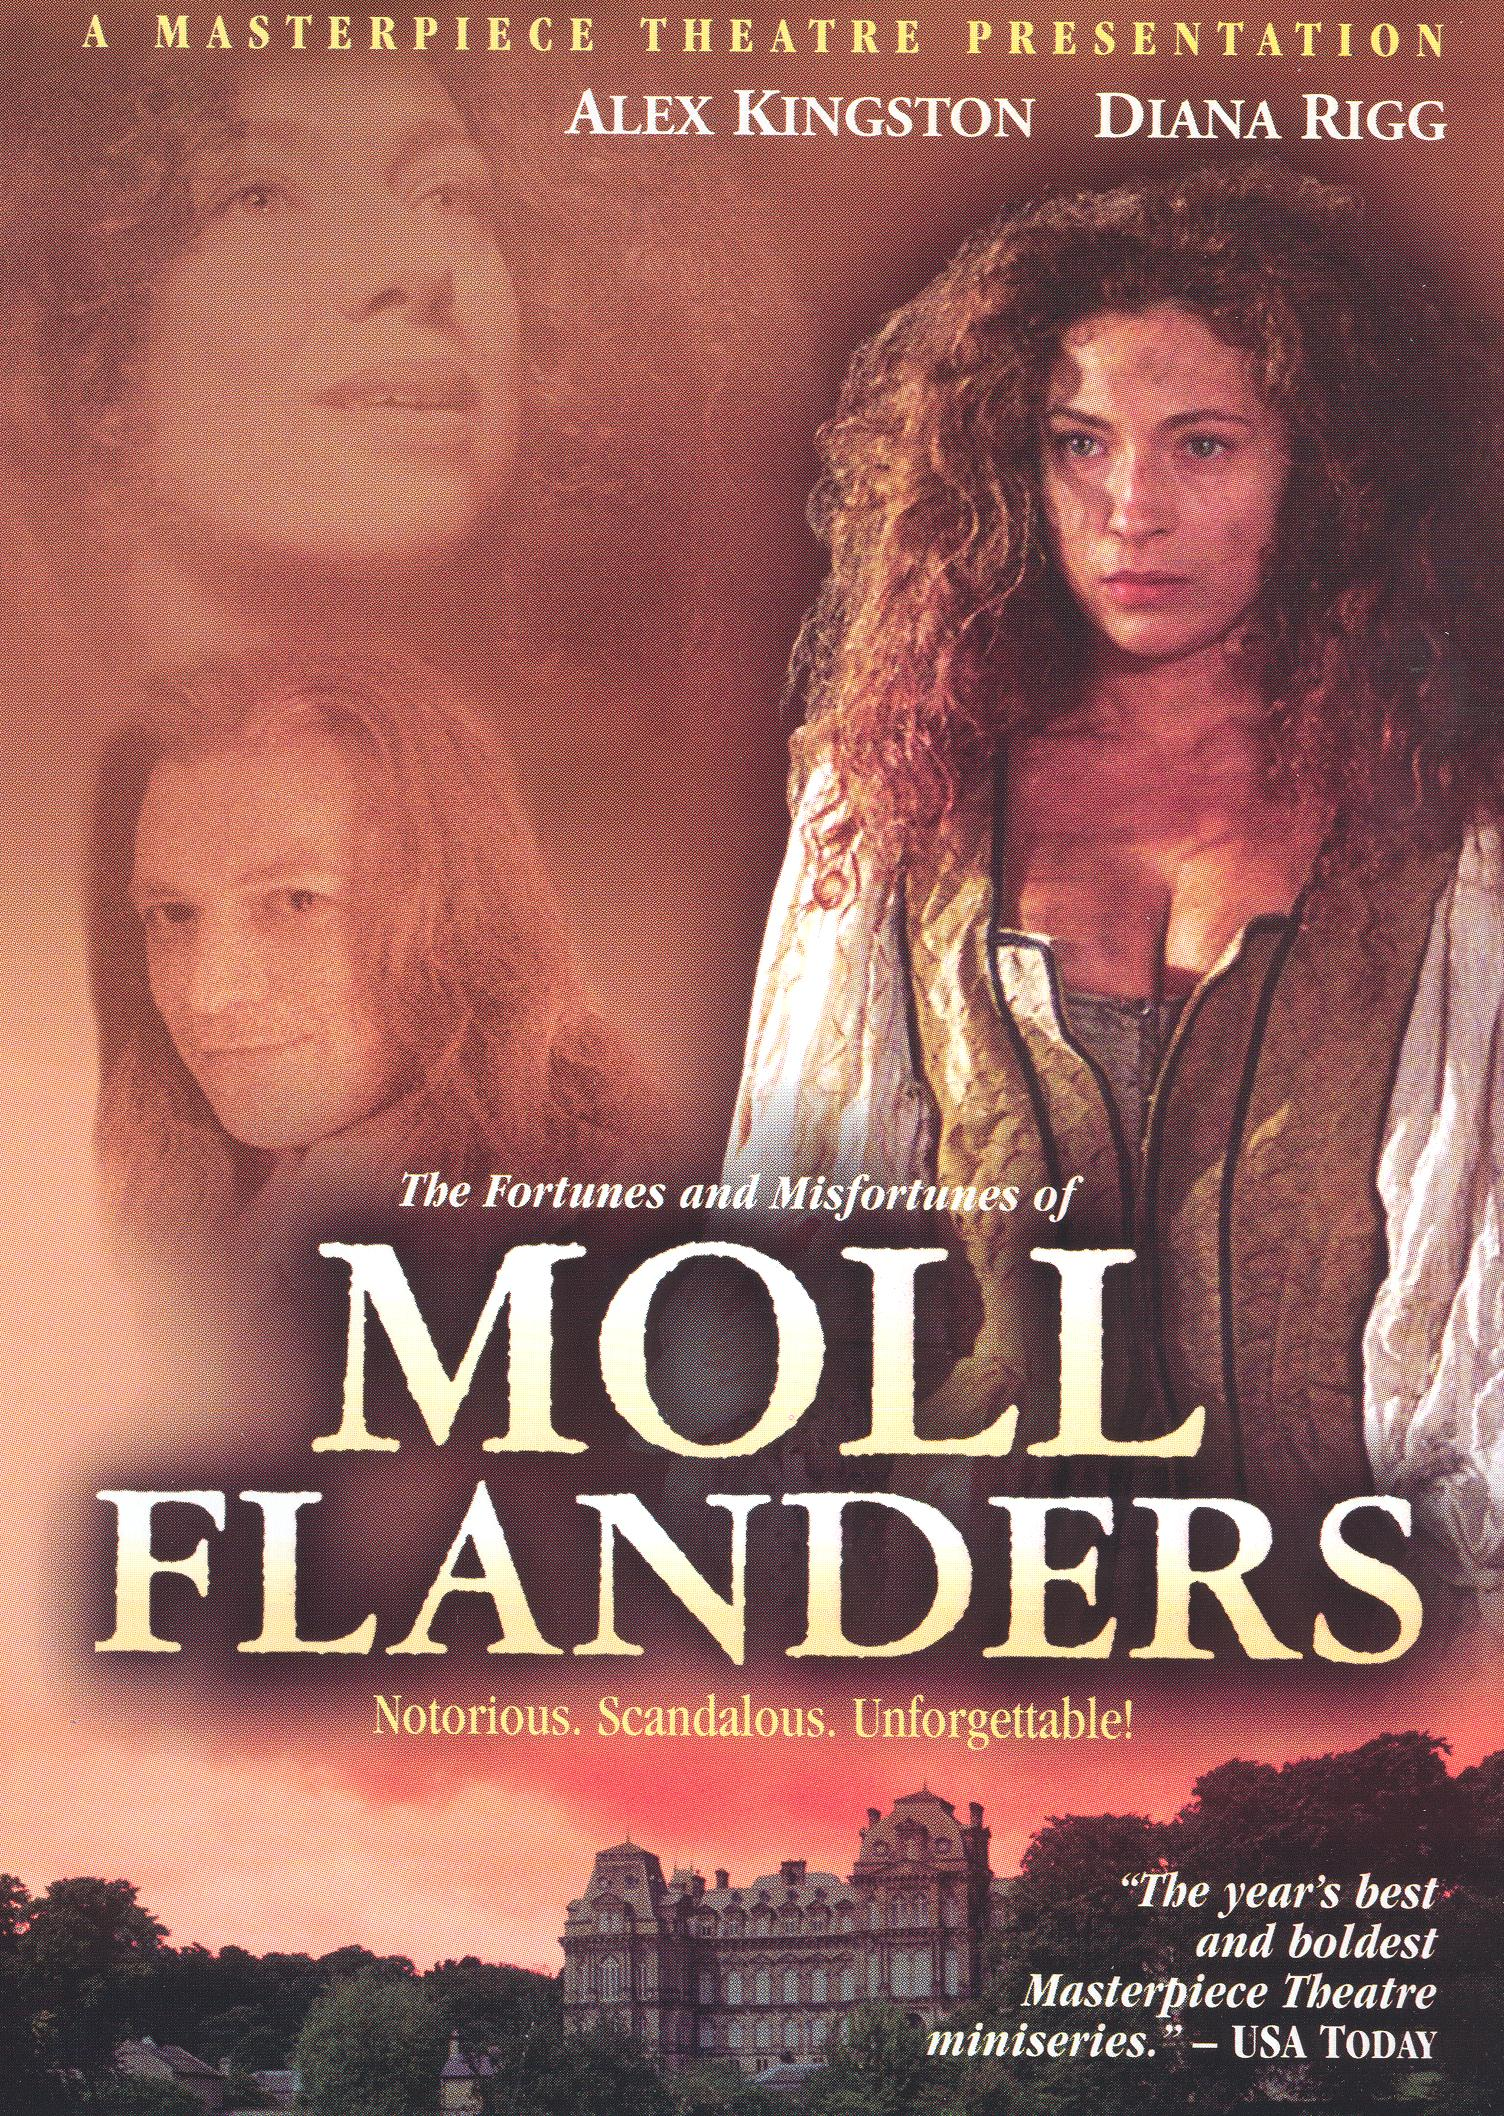 moll flanders Moll flanders new edition daniel defoe edited by g a starr and introduction and notes by linda bree oxford world's classics a key work in the development of the novel, this new edition offers a critically edited text.